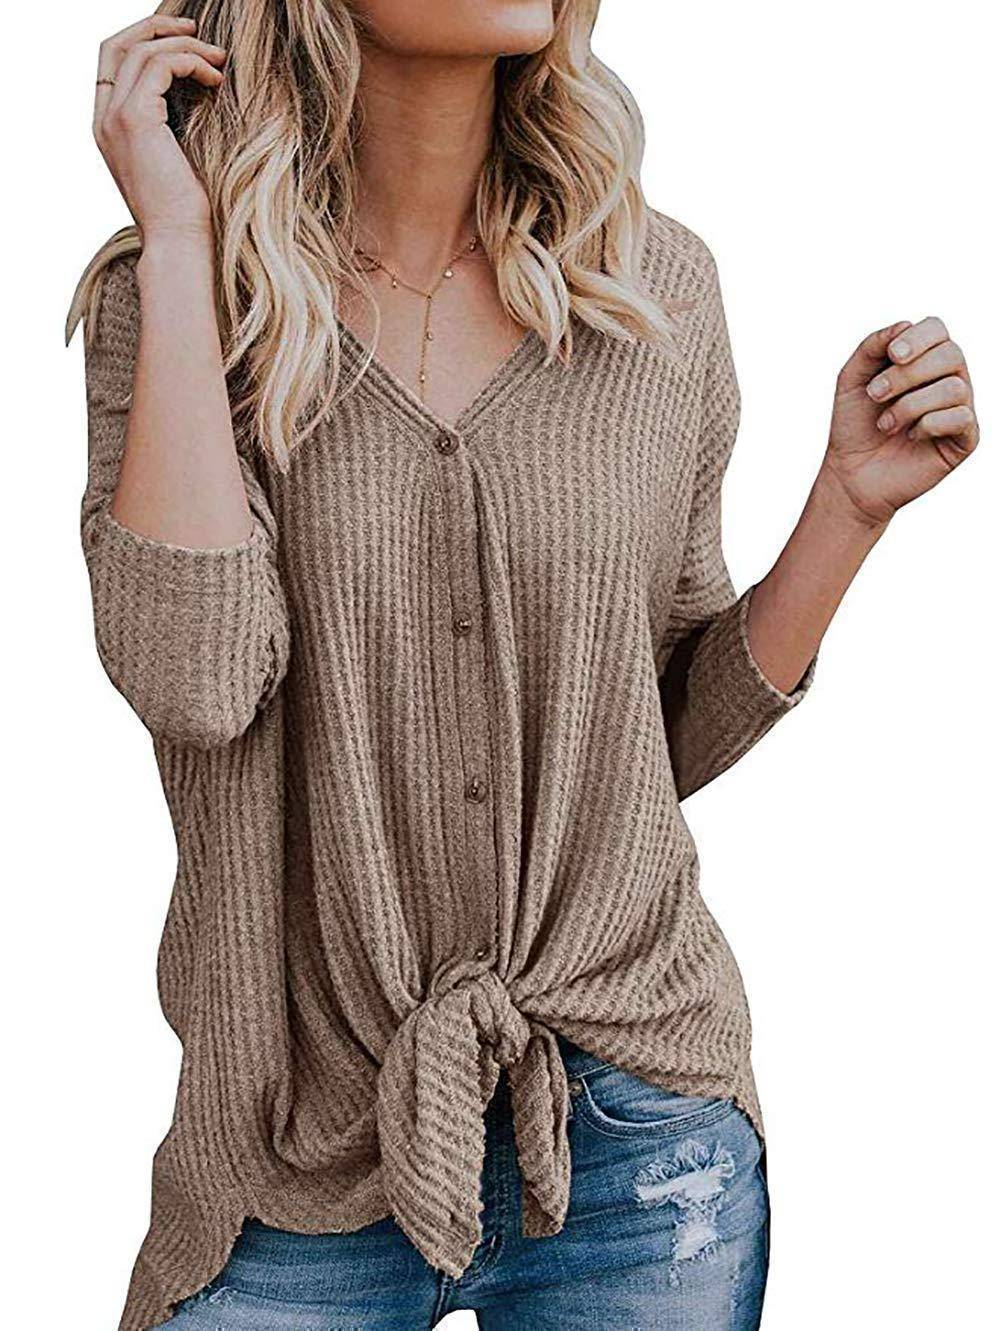 Waffle Knit Tunic Blouse | Tie Knot Henley Tops | Loose Fitting Bat Wing Plain Shirts